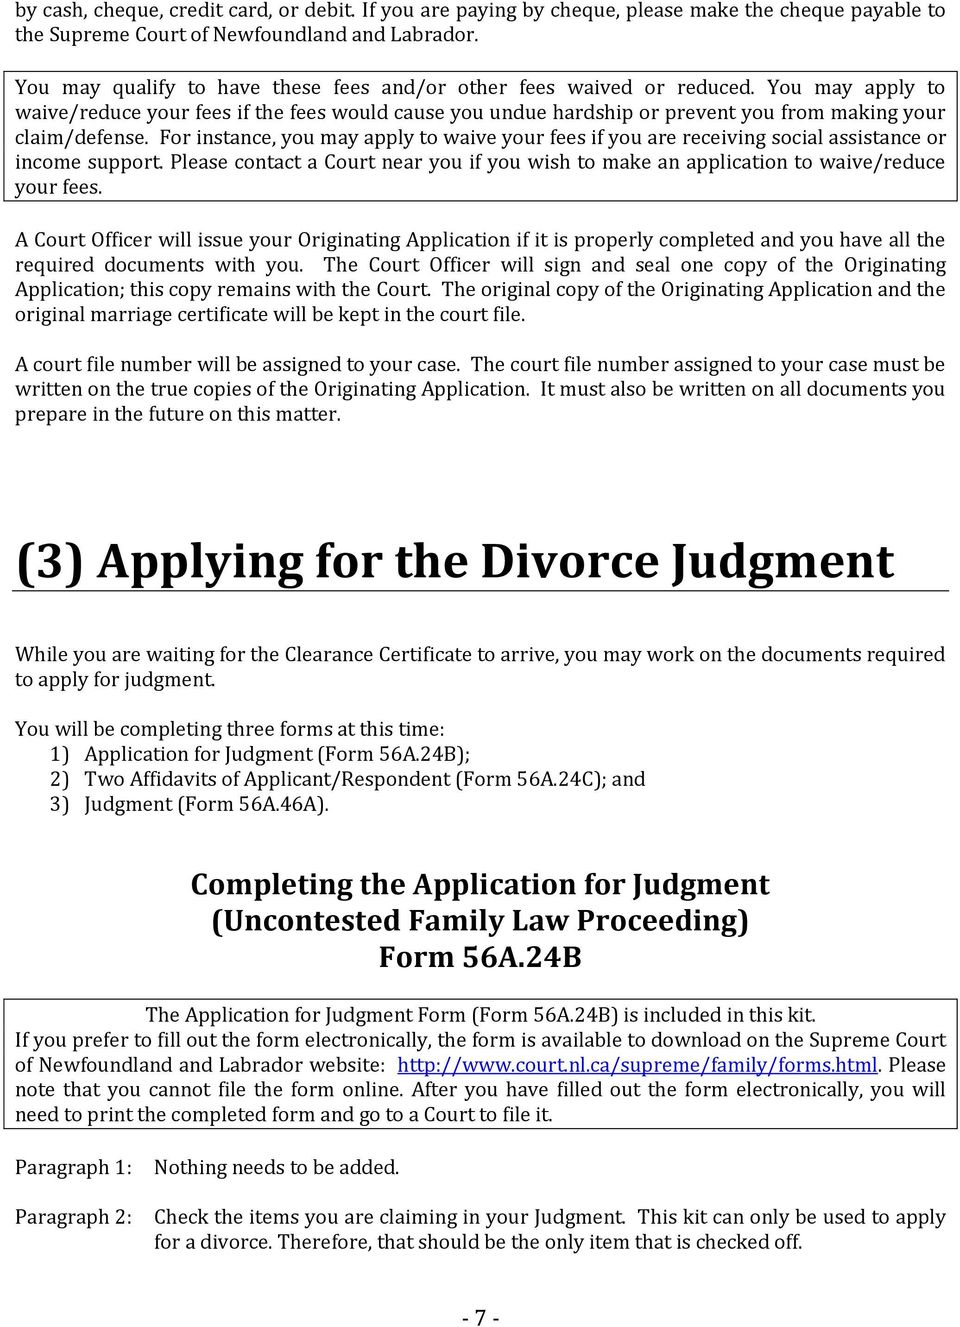 Documents required for divorce